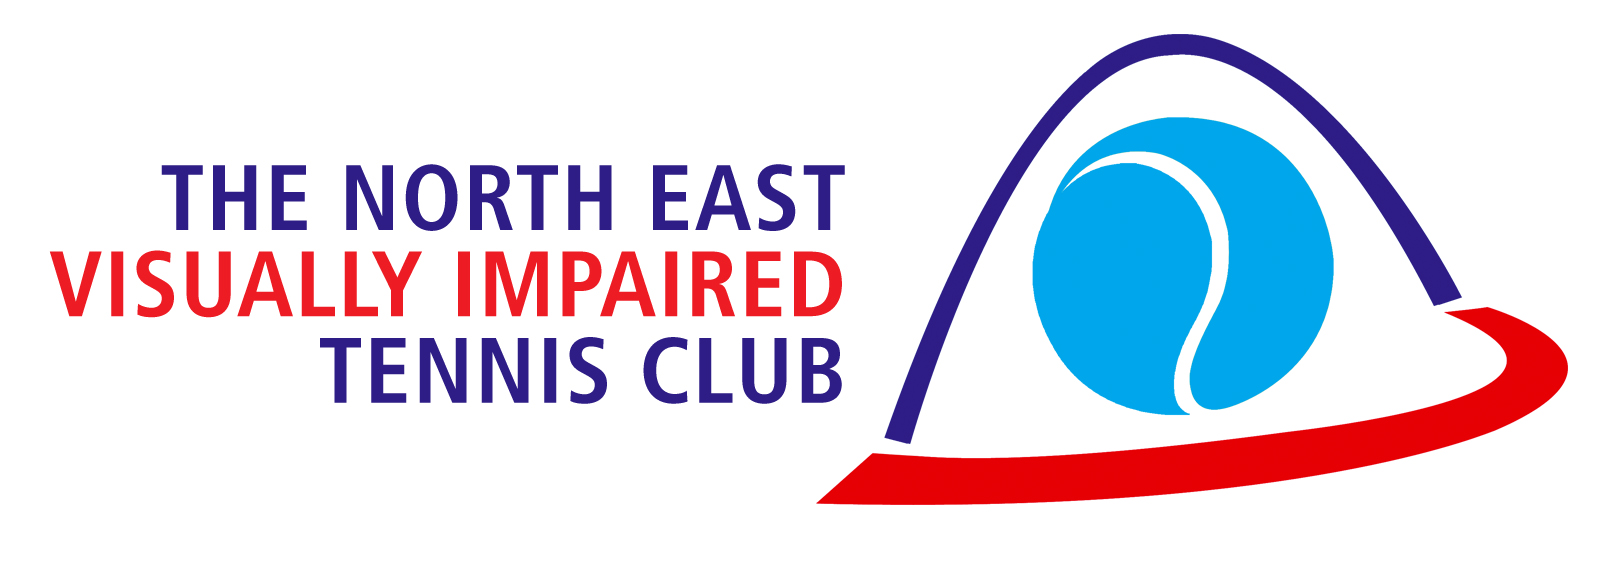 Image shows logo of the North East Visually Impaired Tennis Club